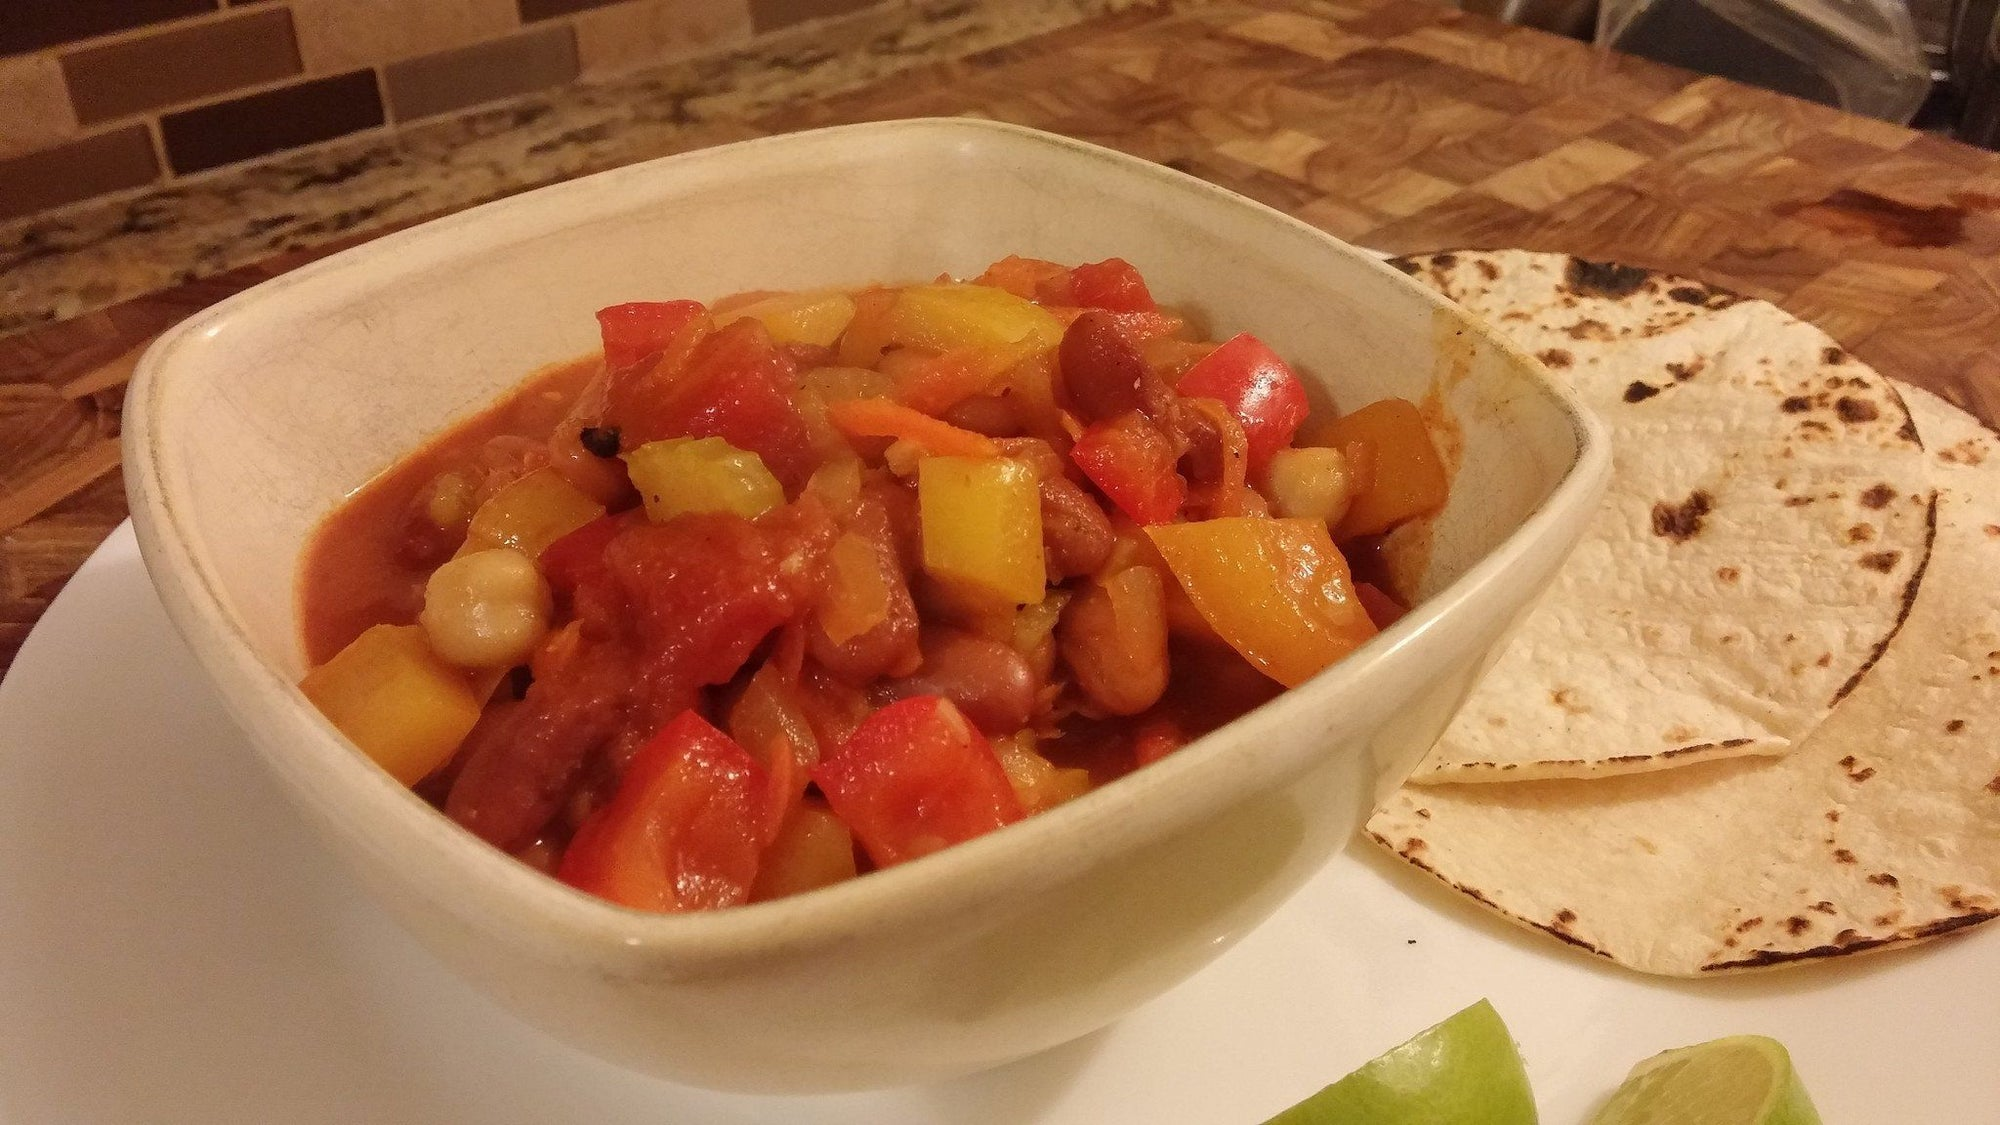 Chugwater Chili with Veggies